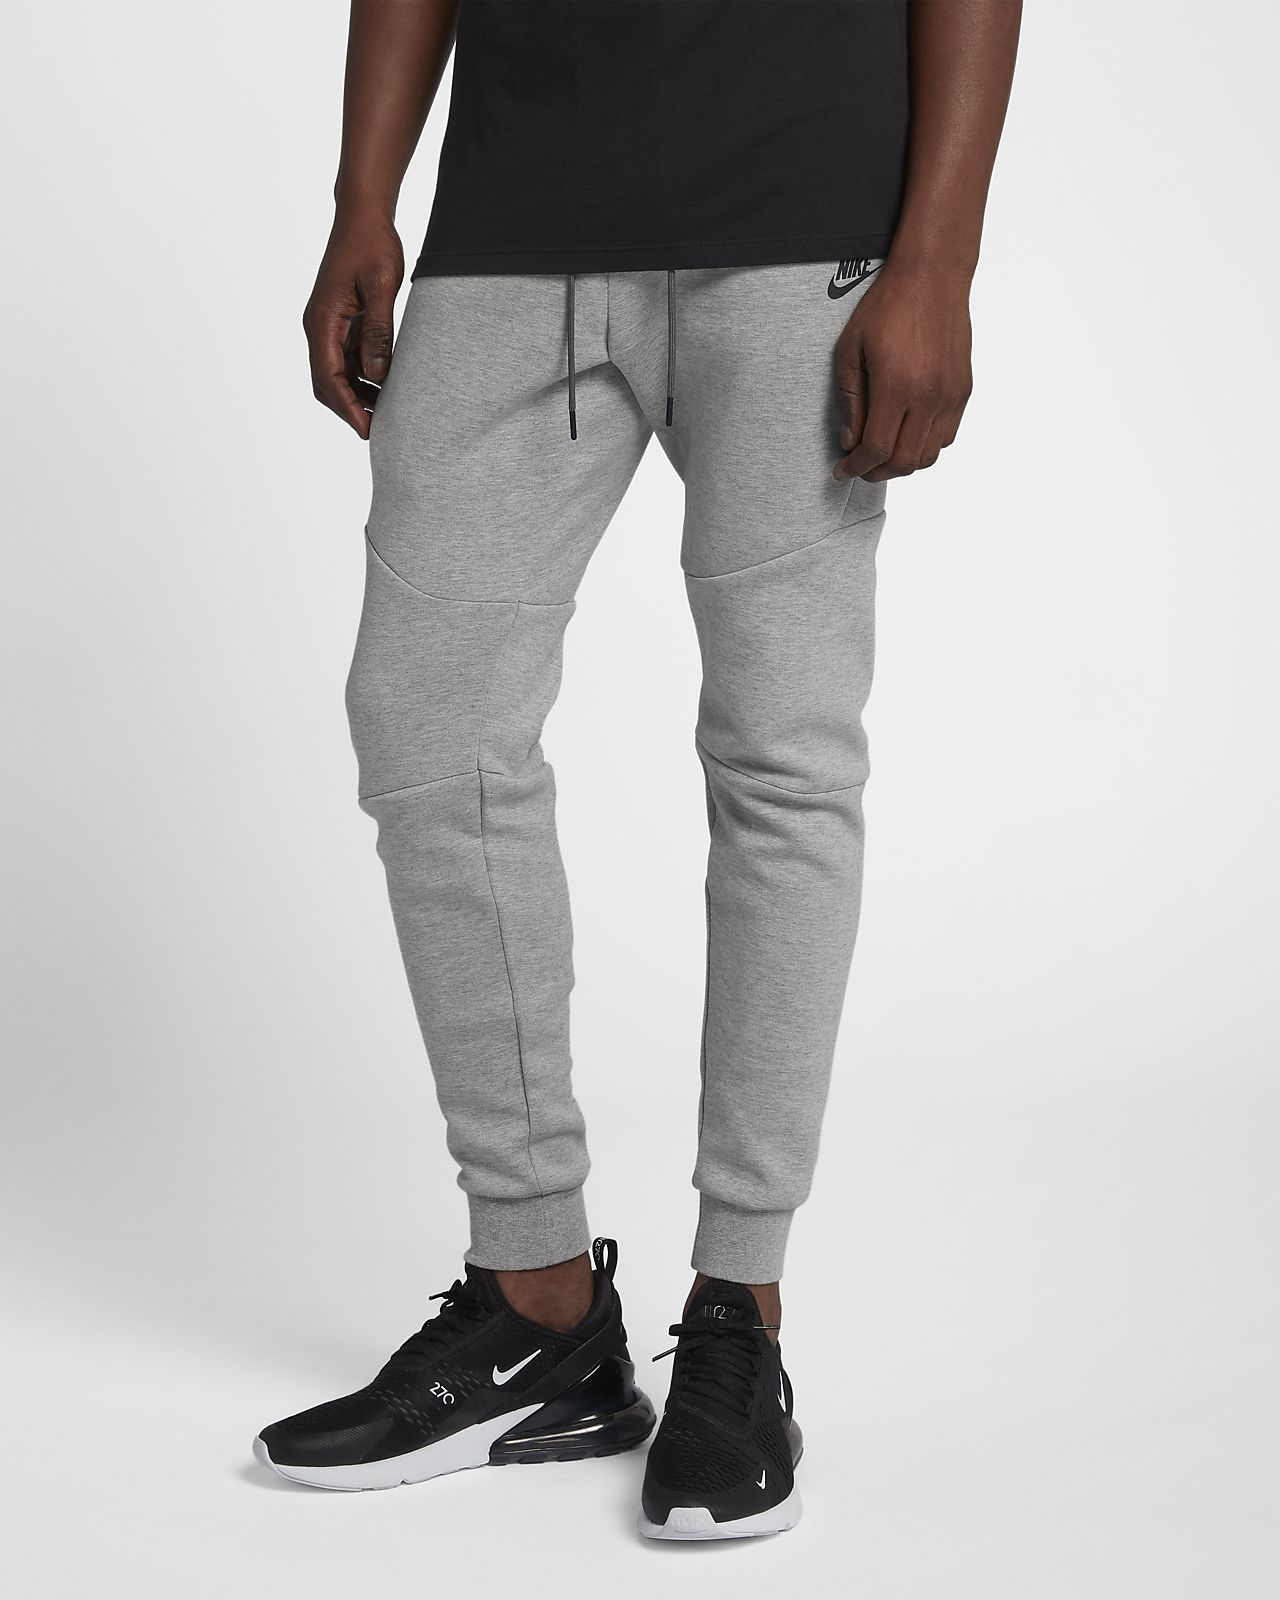 survetement homme ensemble nike slim